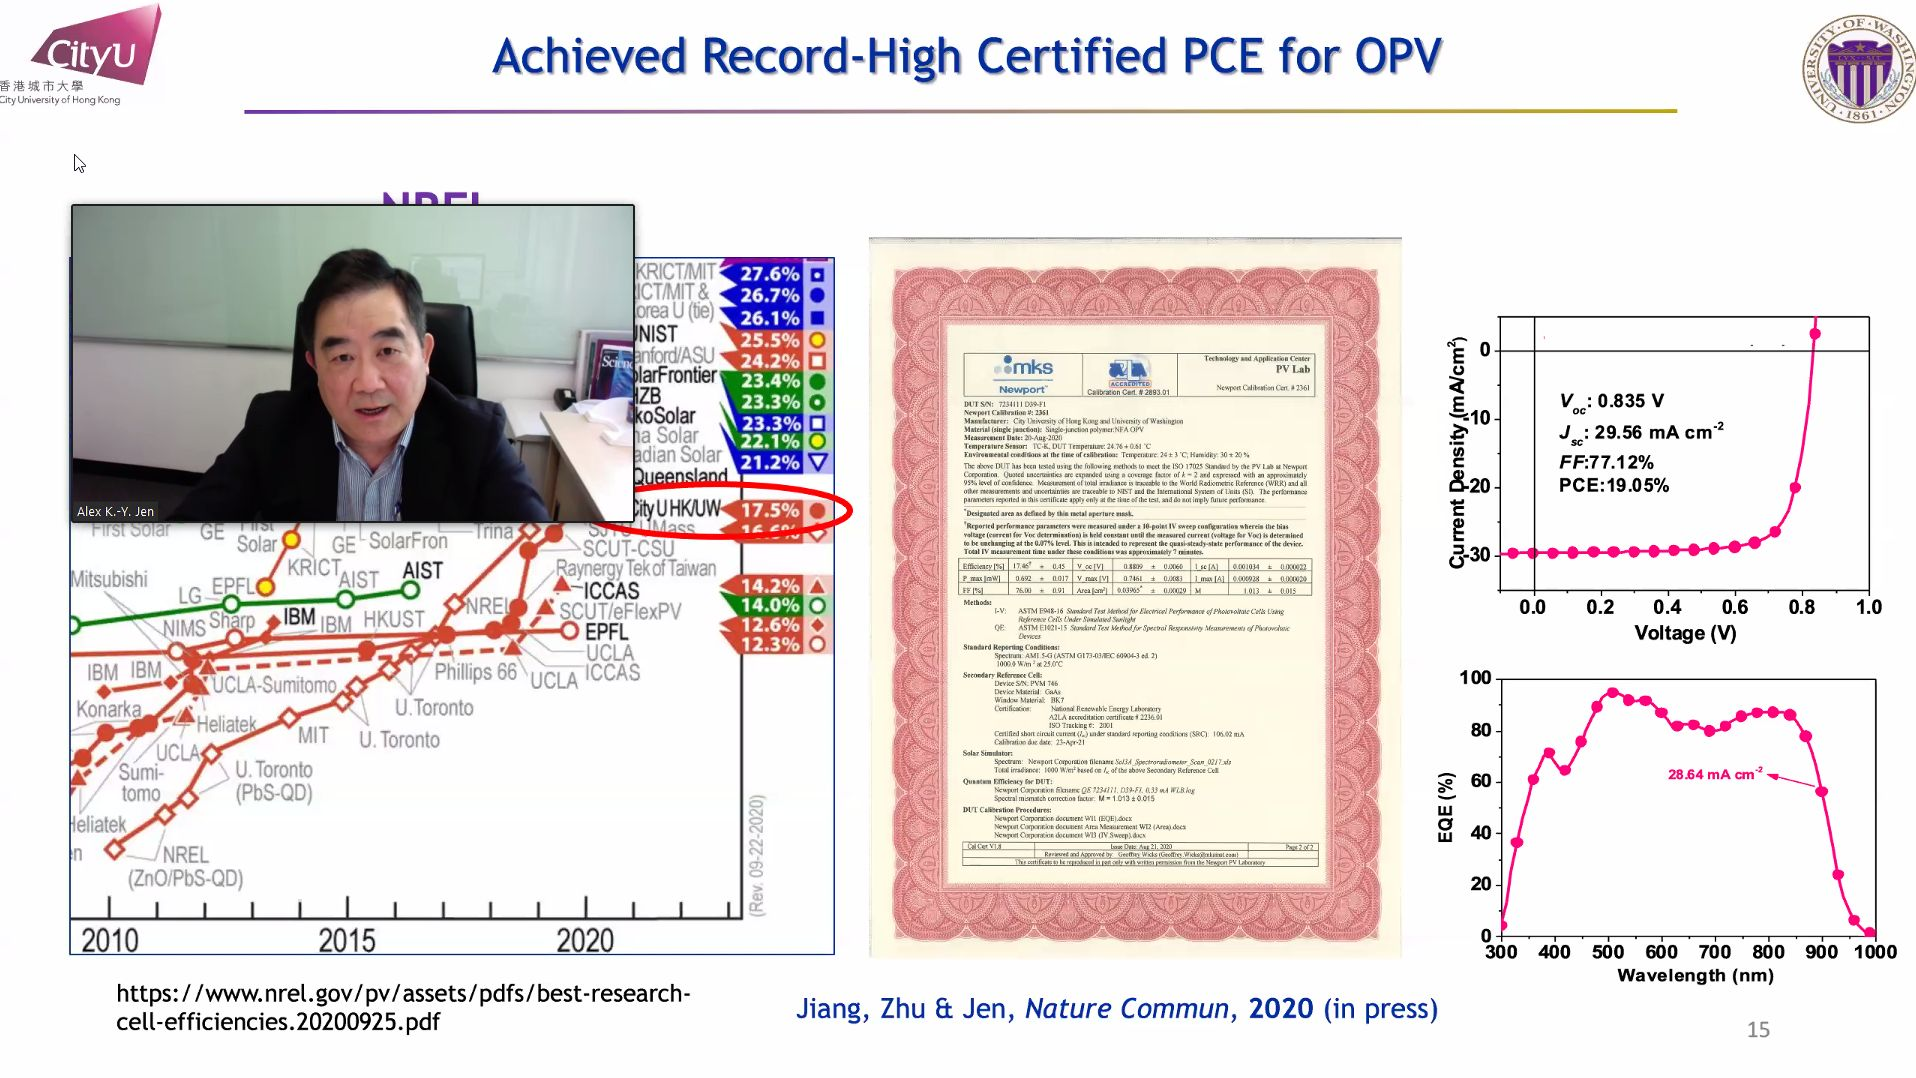 Prof. Jen showing OPV device with 19.05% Efficiency